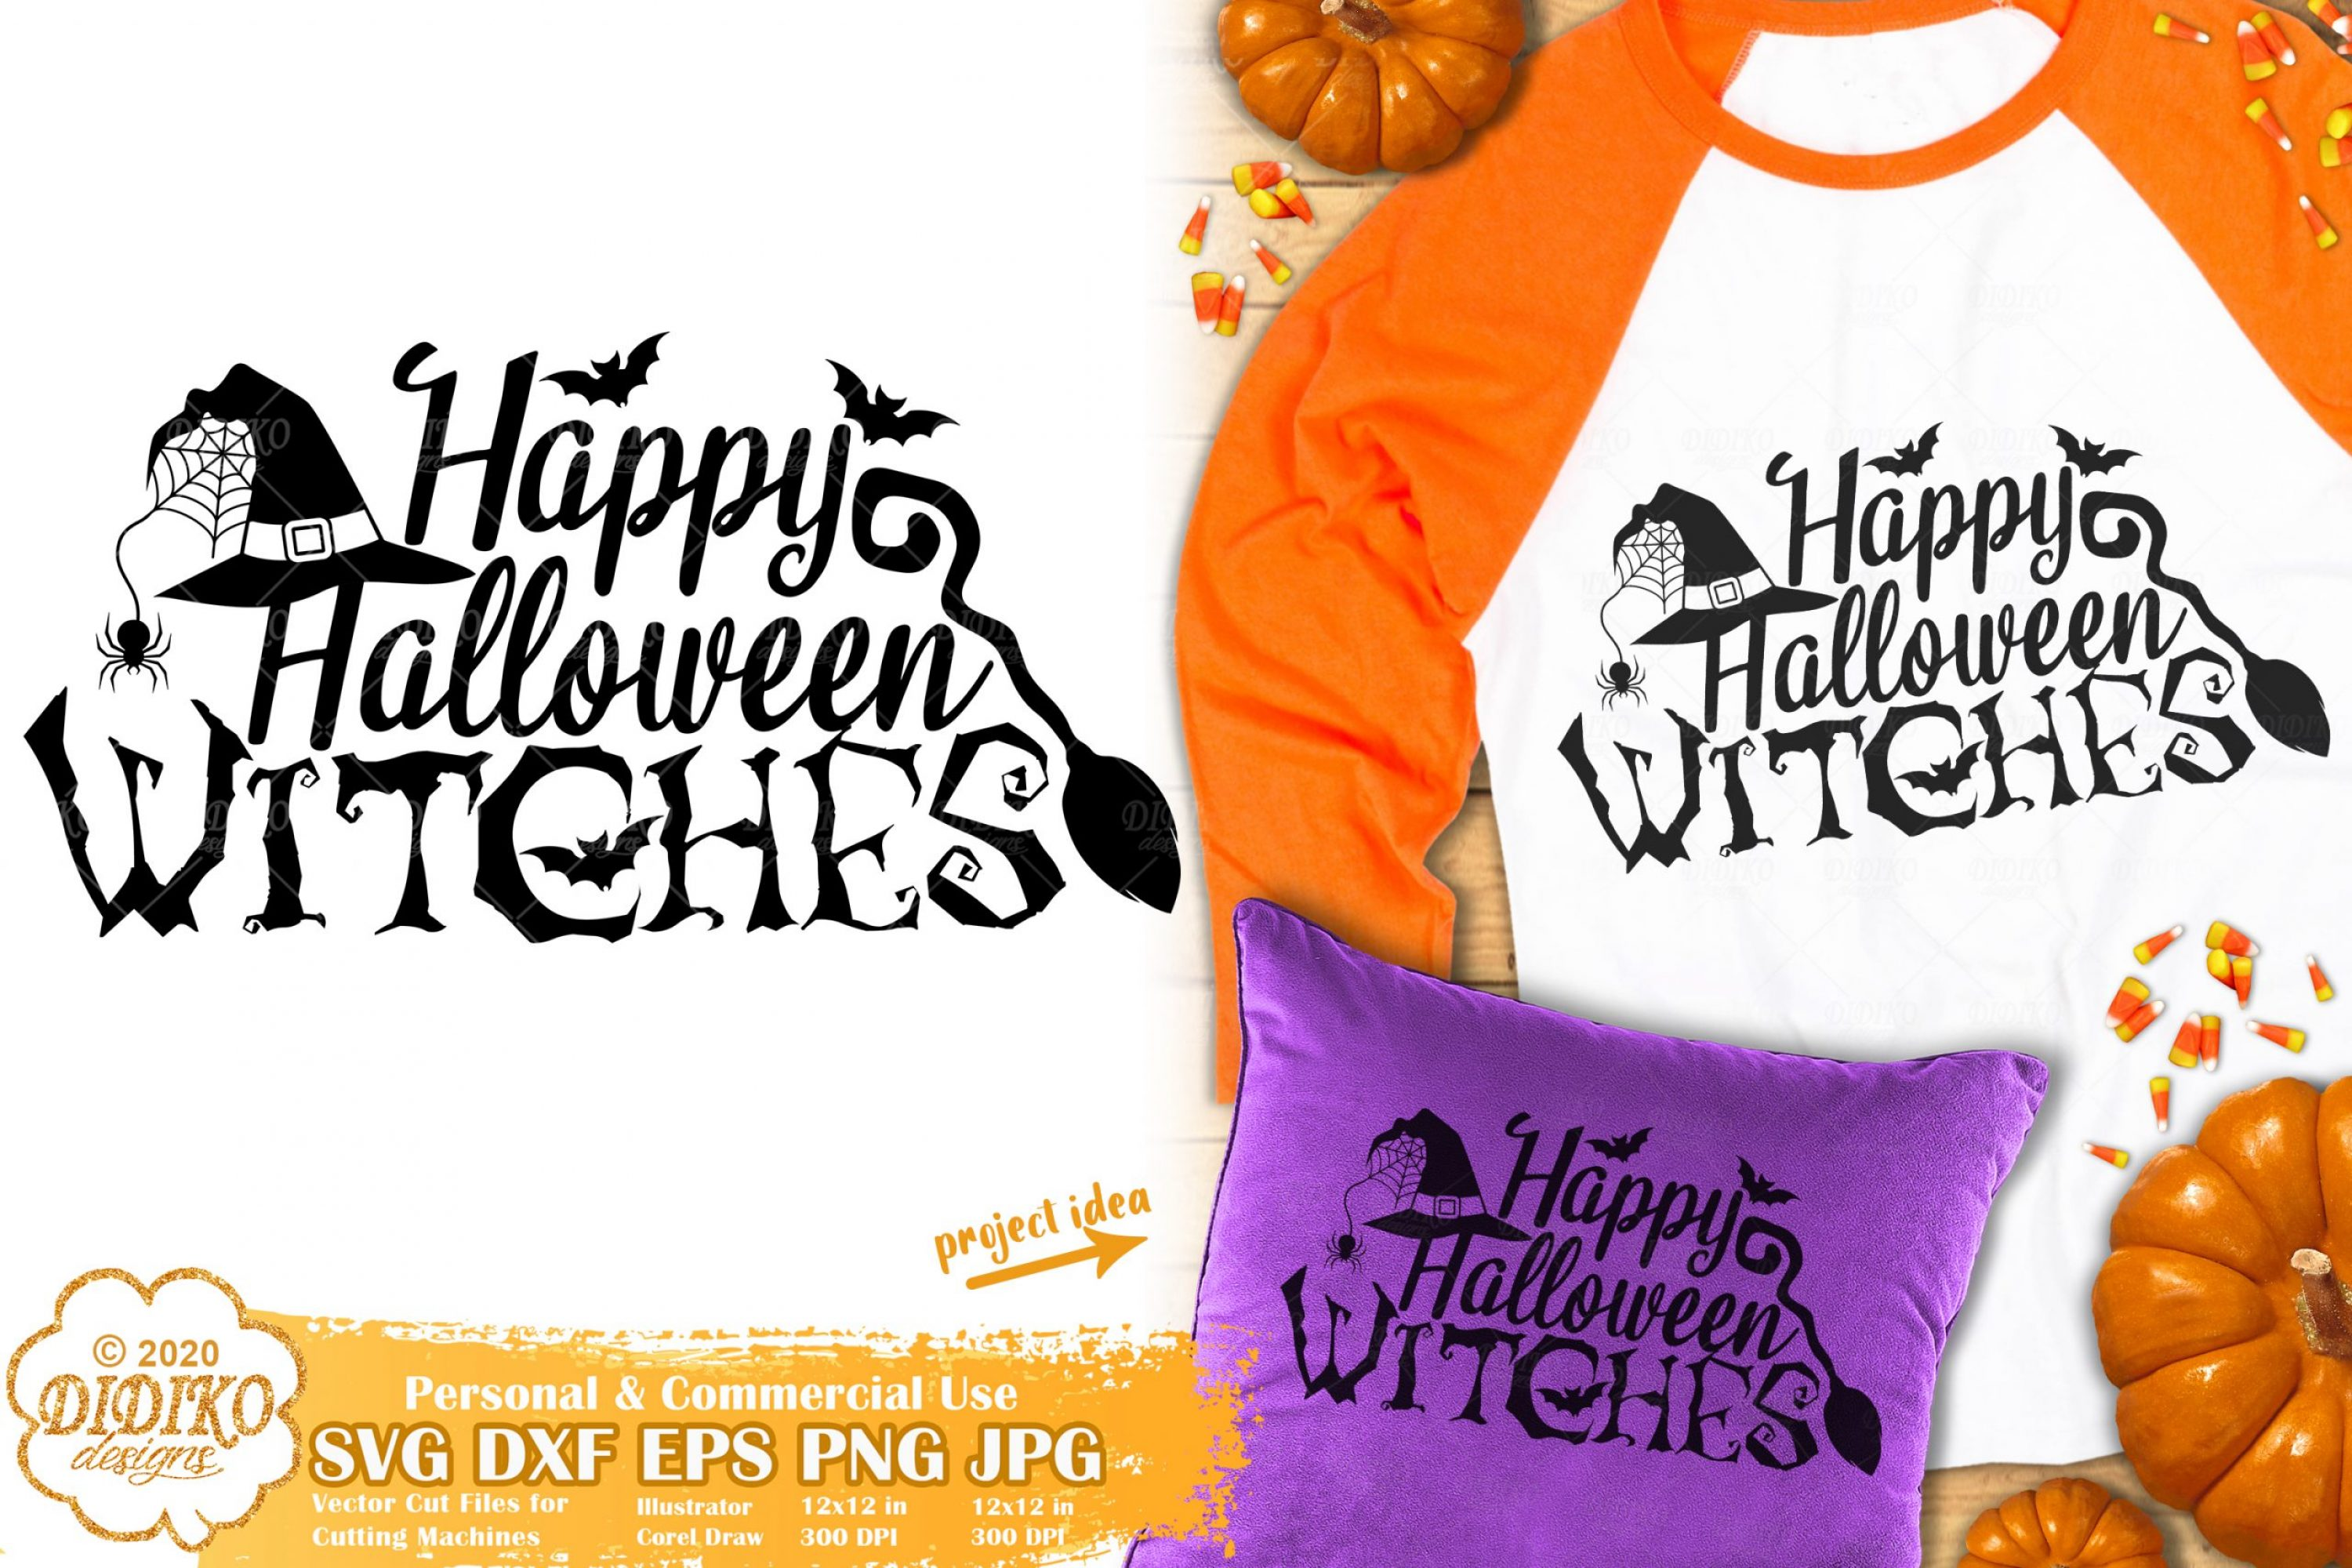 Happy Halloween Witches SVG | Funny Halloween SVG